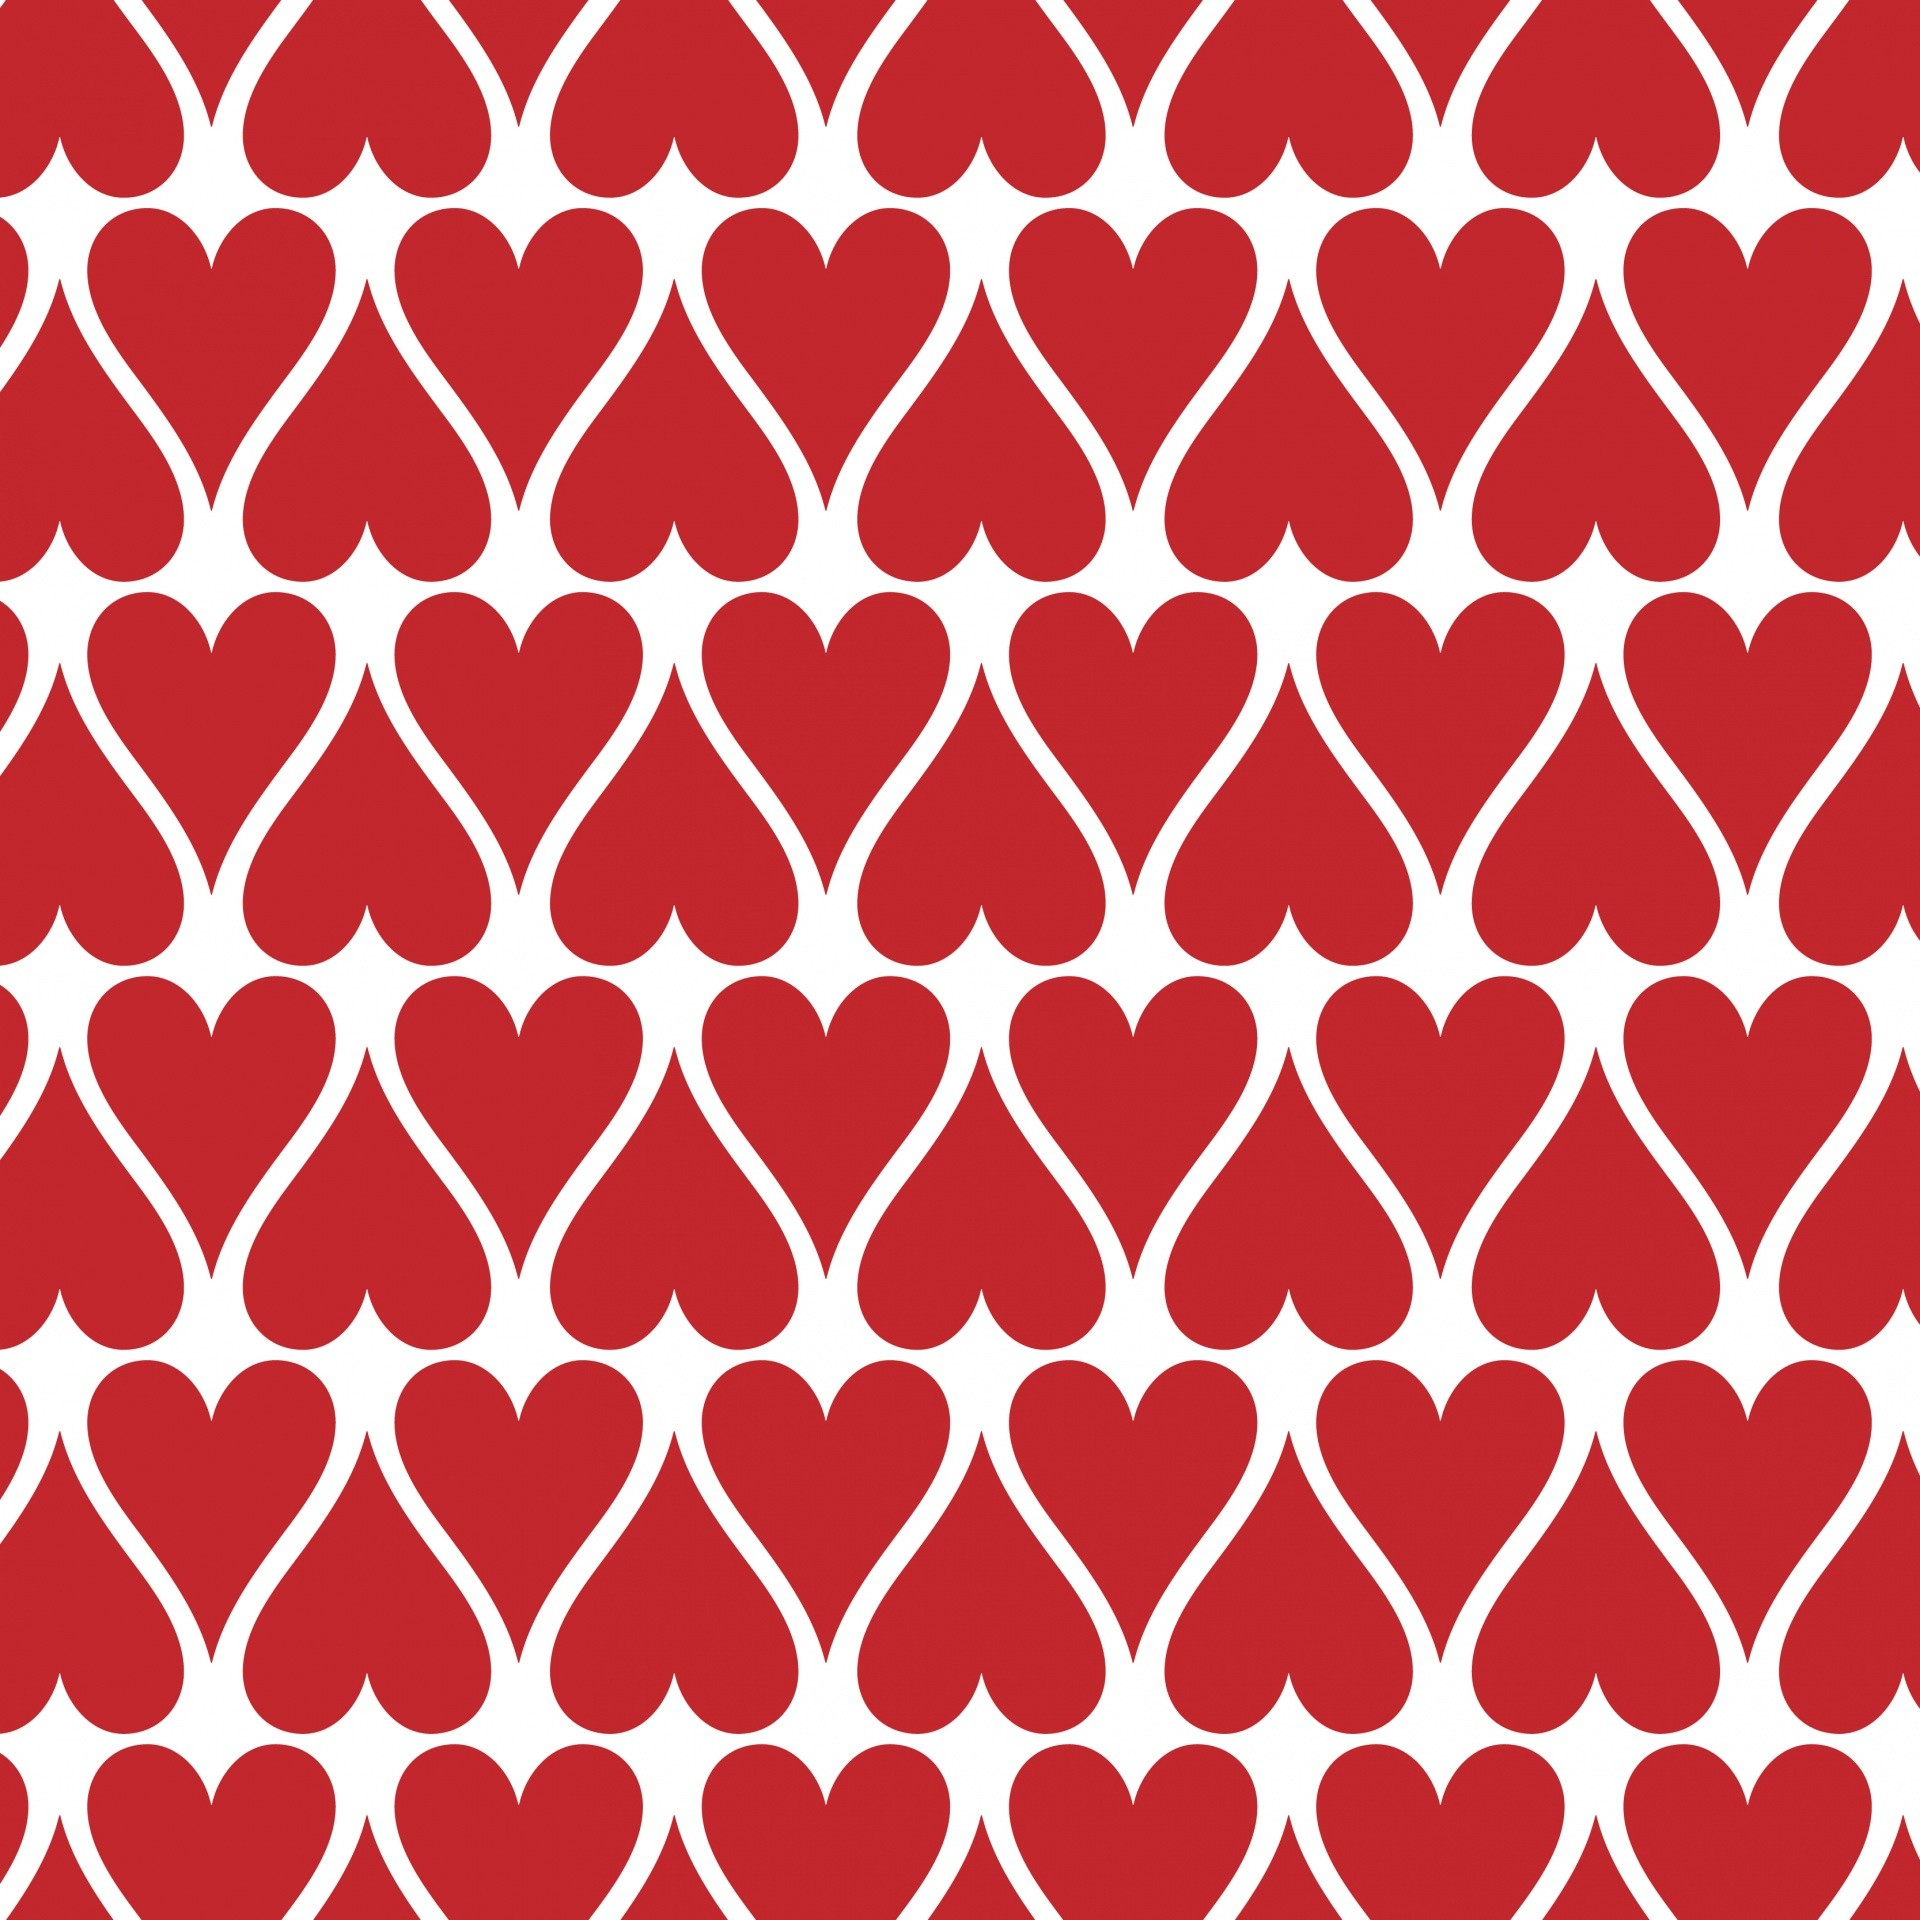 1920x1920 Red Hearts Wallpaper Background